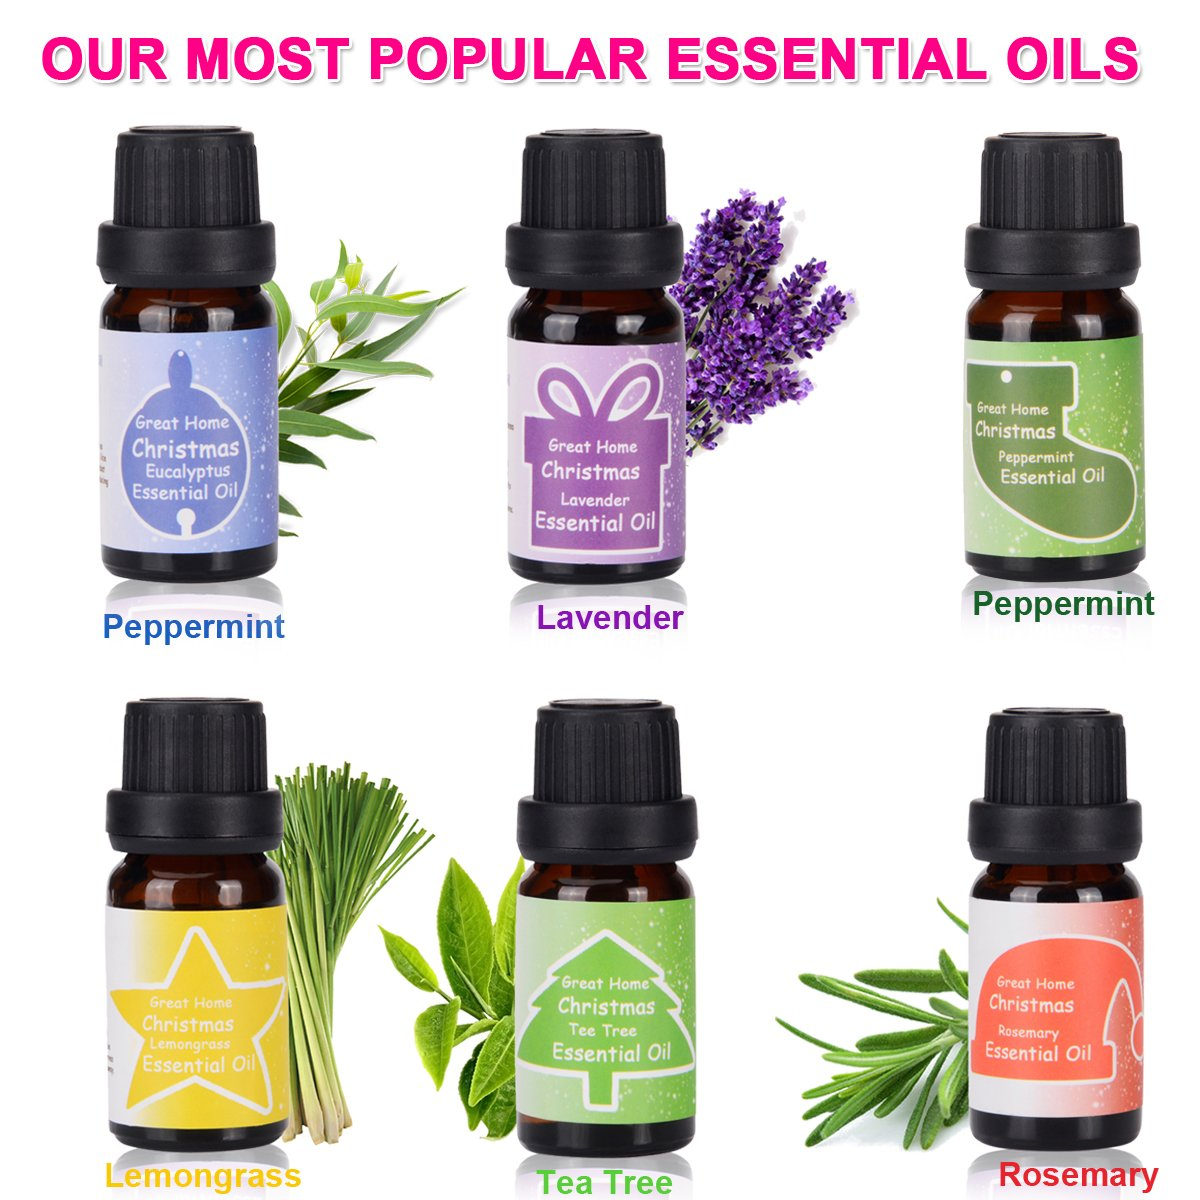 amazoncom aromatherapy essential oils holiday scents set for diffuser majestic pure therapeutic grade basic sampler essential oil starter kit with - Christmas Essential Oils